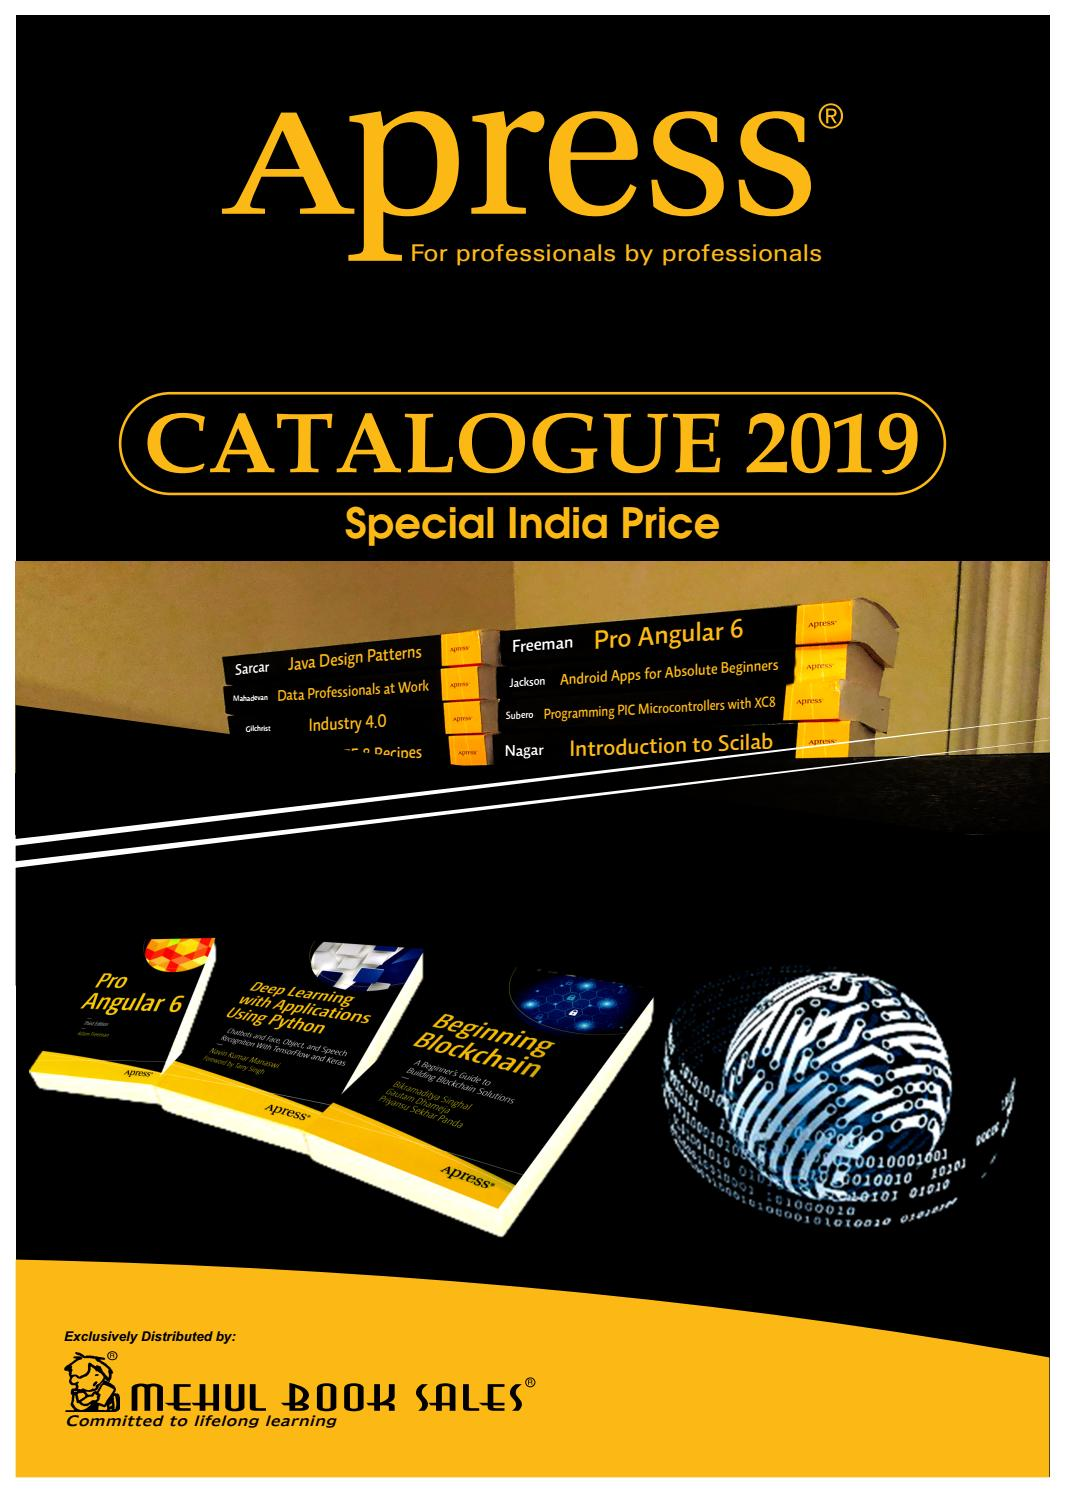 APRESS -INDIA SPECIAL PRICE CATALOG 2019 by Madhu Pillai - issuu